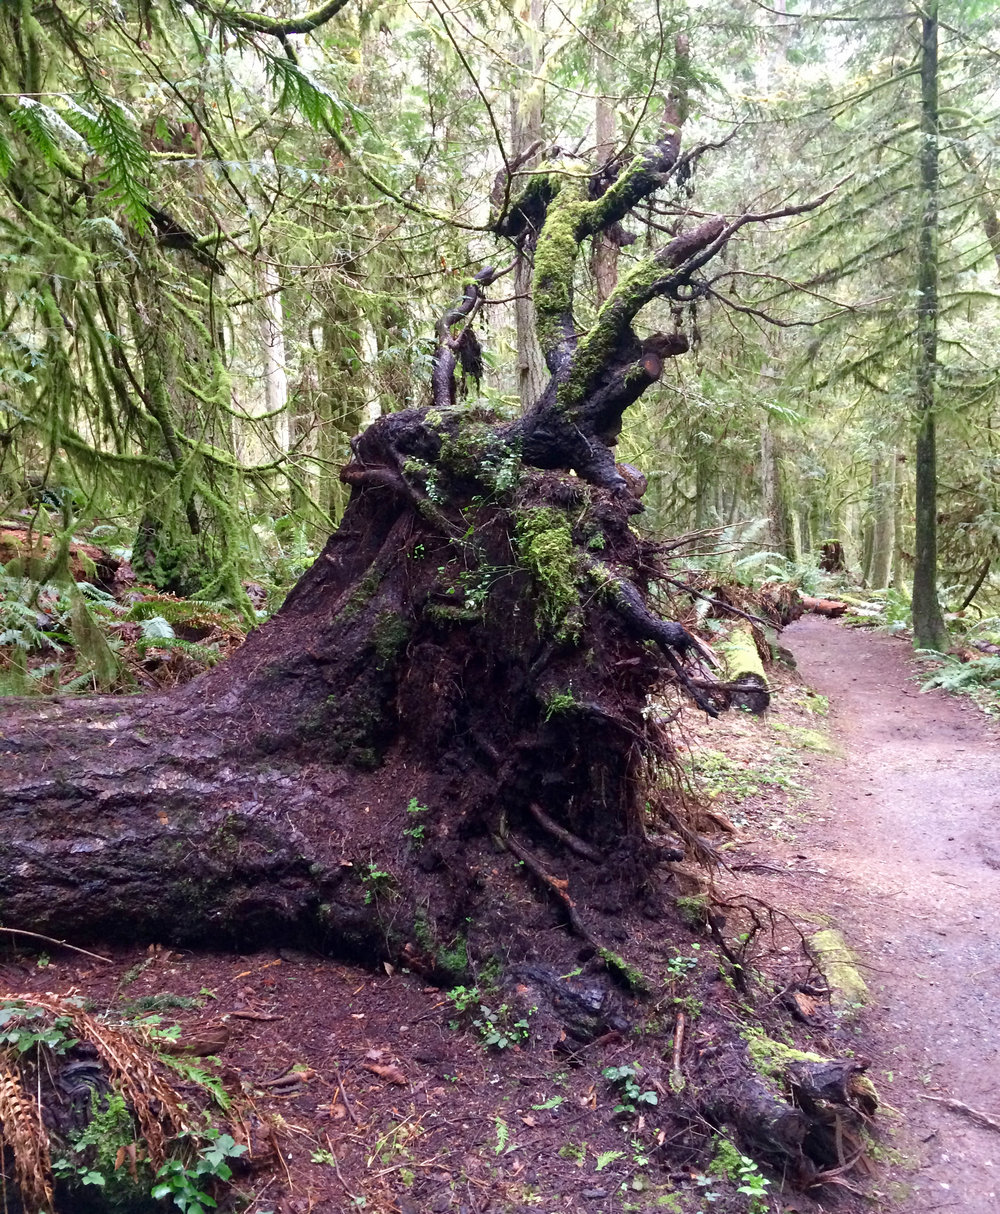 Amazing old root structure from fallen Douglas Fir giant